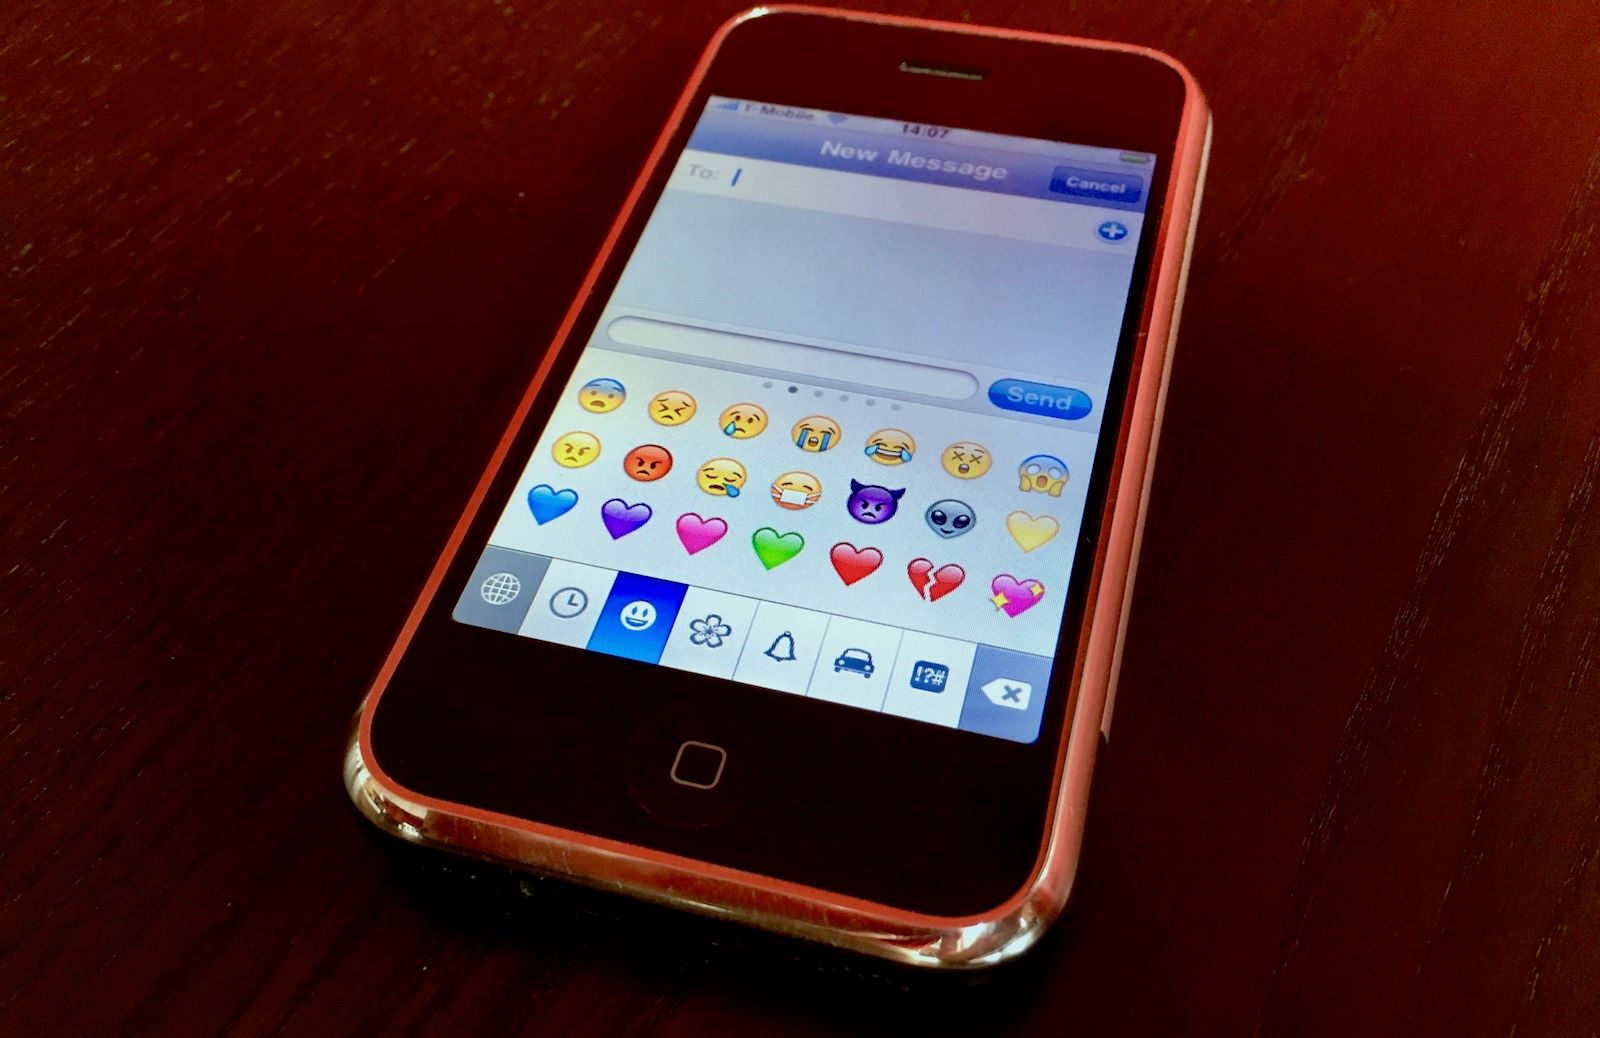 The Original iPhone Emoji Keyboard